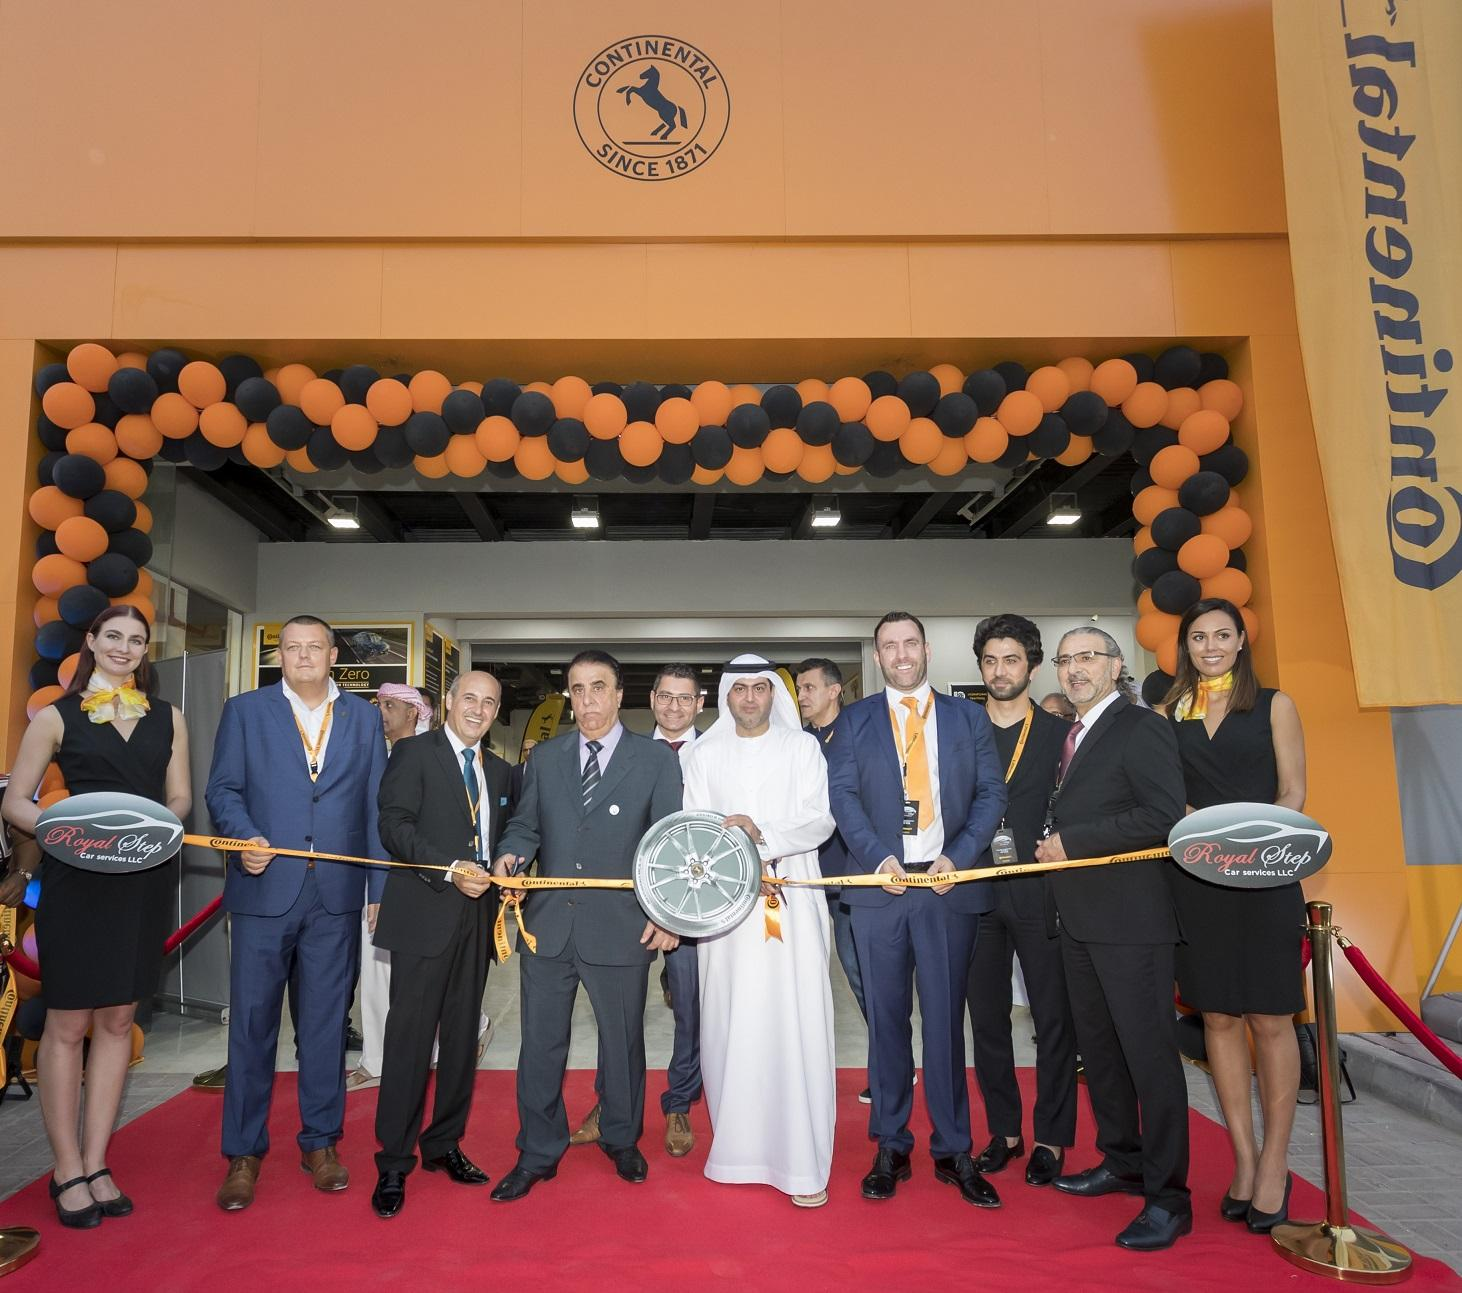 Royal Step becomes 'Authorised Dealership' of Continental and EUT, (L-R) , Karel Kucera, Managing Director of Continental Middle East, Hassan El Haj, Managing Director of Royal Step Car Services, Khalil Ismail Jaber, CEO at Royal Step Car Services, Khalid Abdulla Tariam, Chairman & General Manager of Dar Al Khaleej publishing house, and Shaun Smith, General Manager at EUT